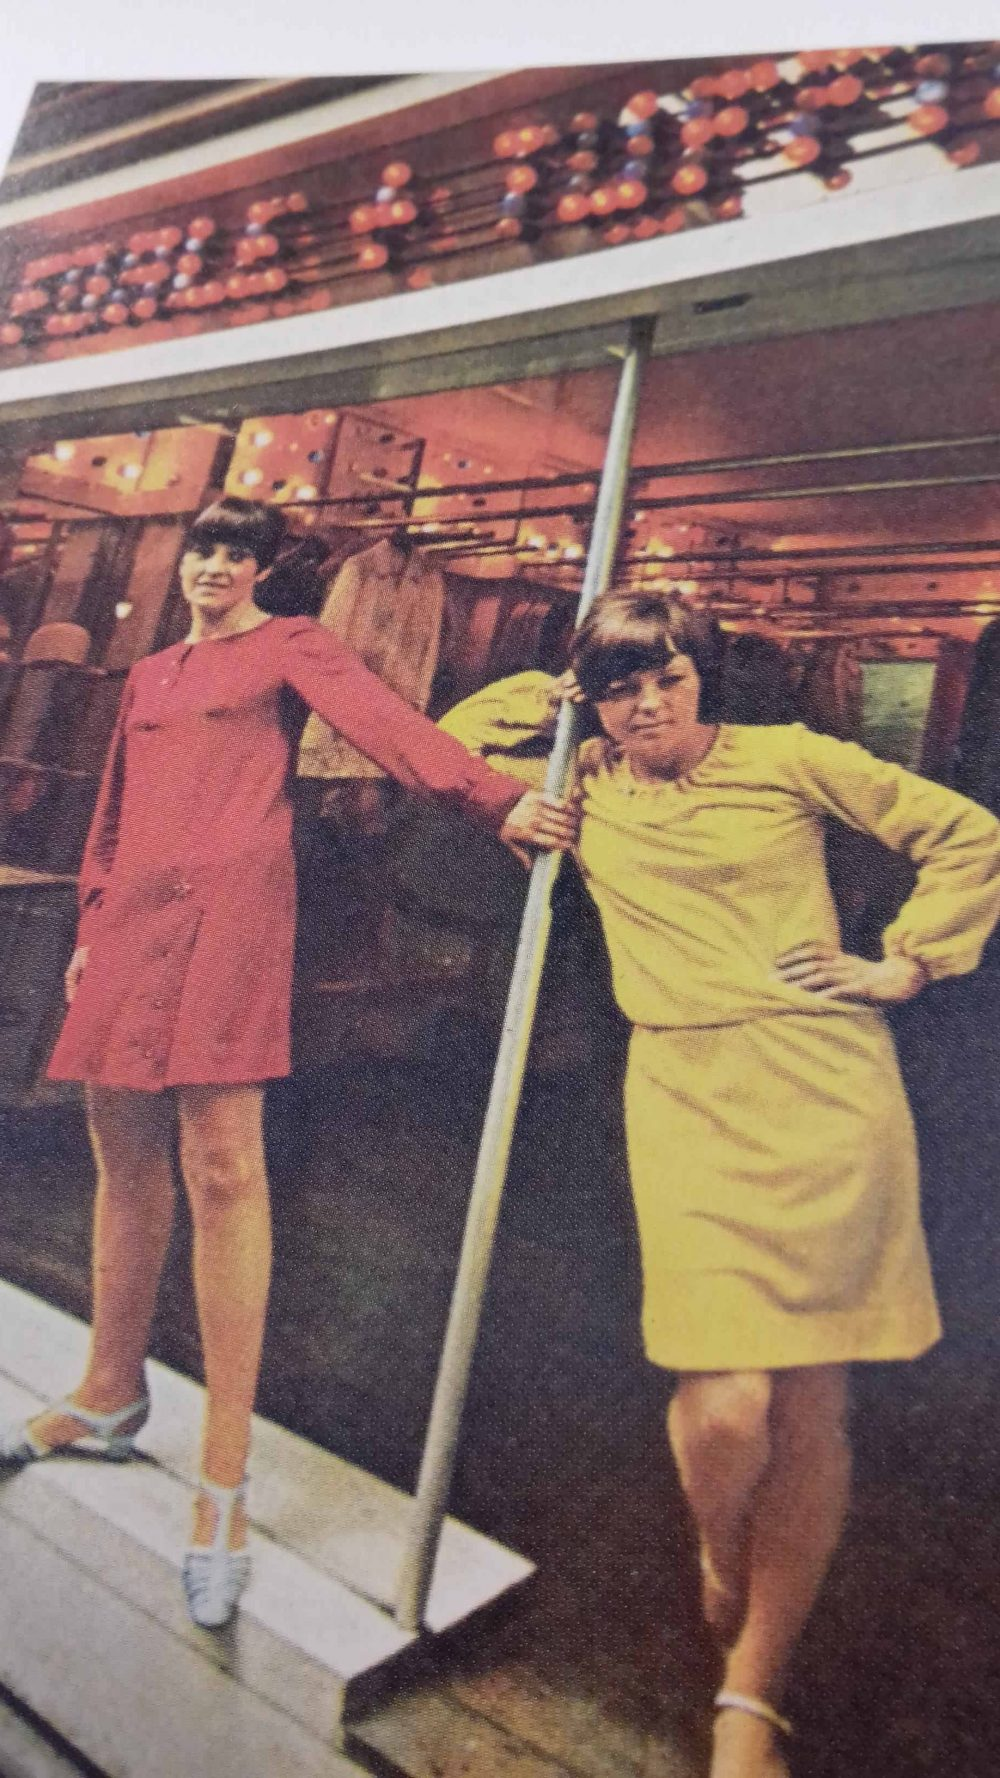 Foale and Tuffin, Swinging Sixties, Carnaby Street, Ballgowns to Bumsters tour, Fashion history tour, 1960s Fashion, Soho, Carnaby Street